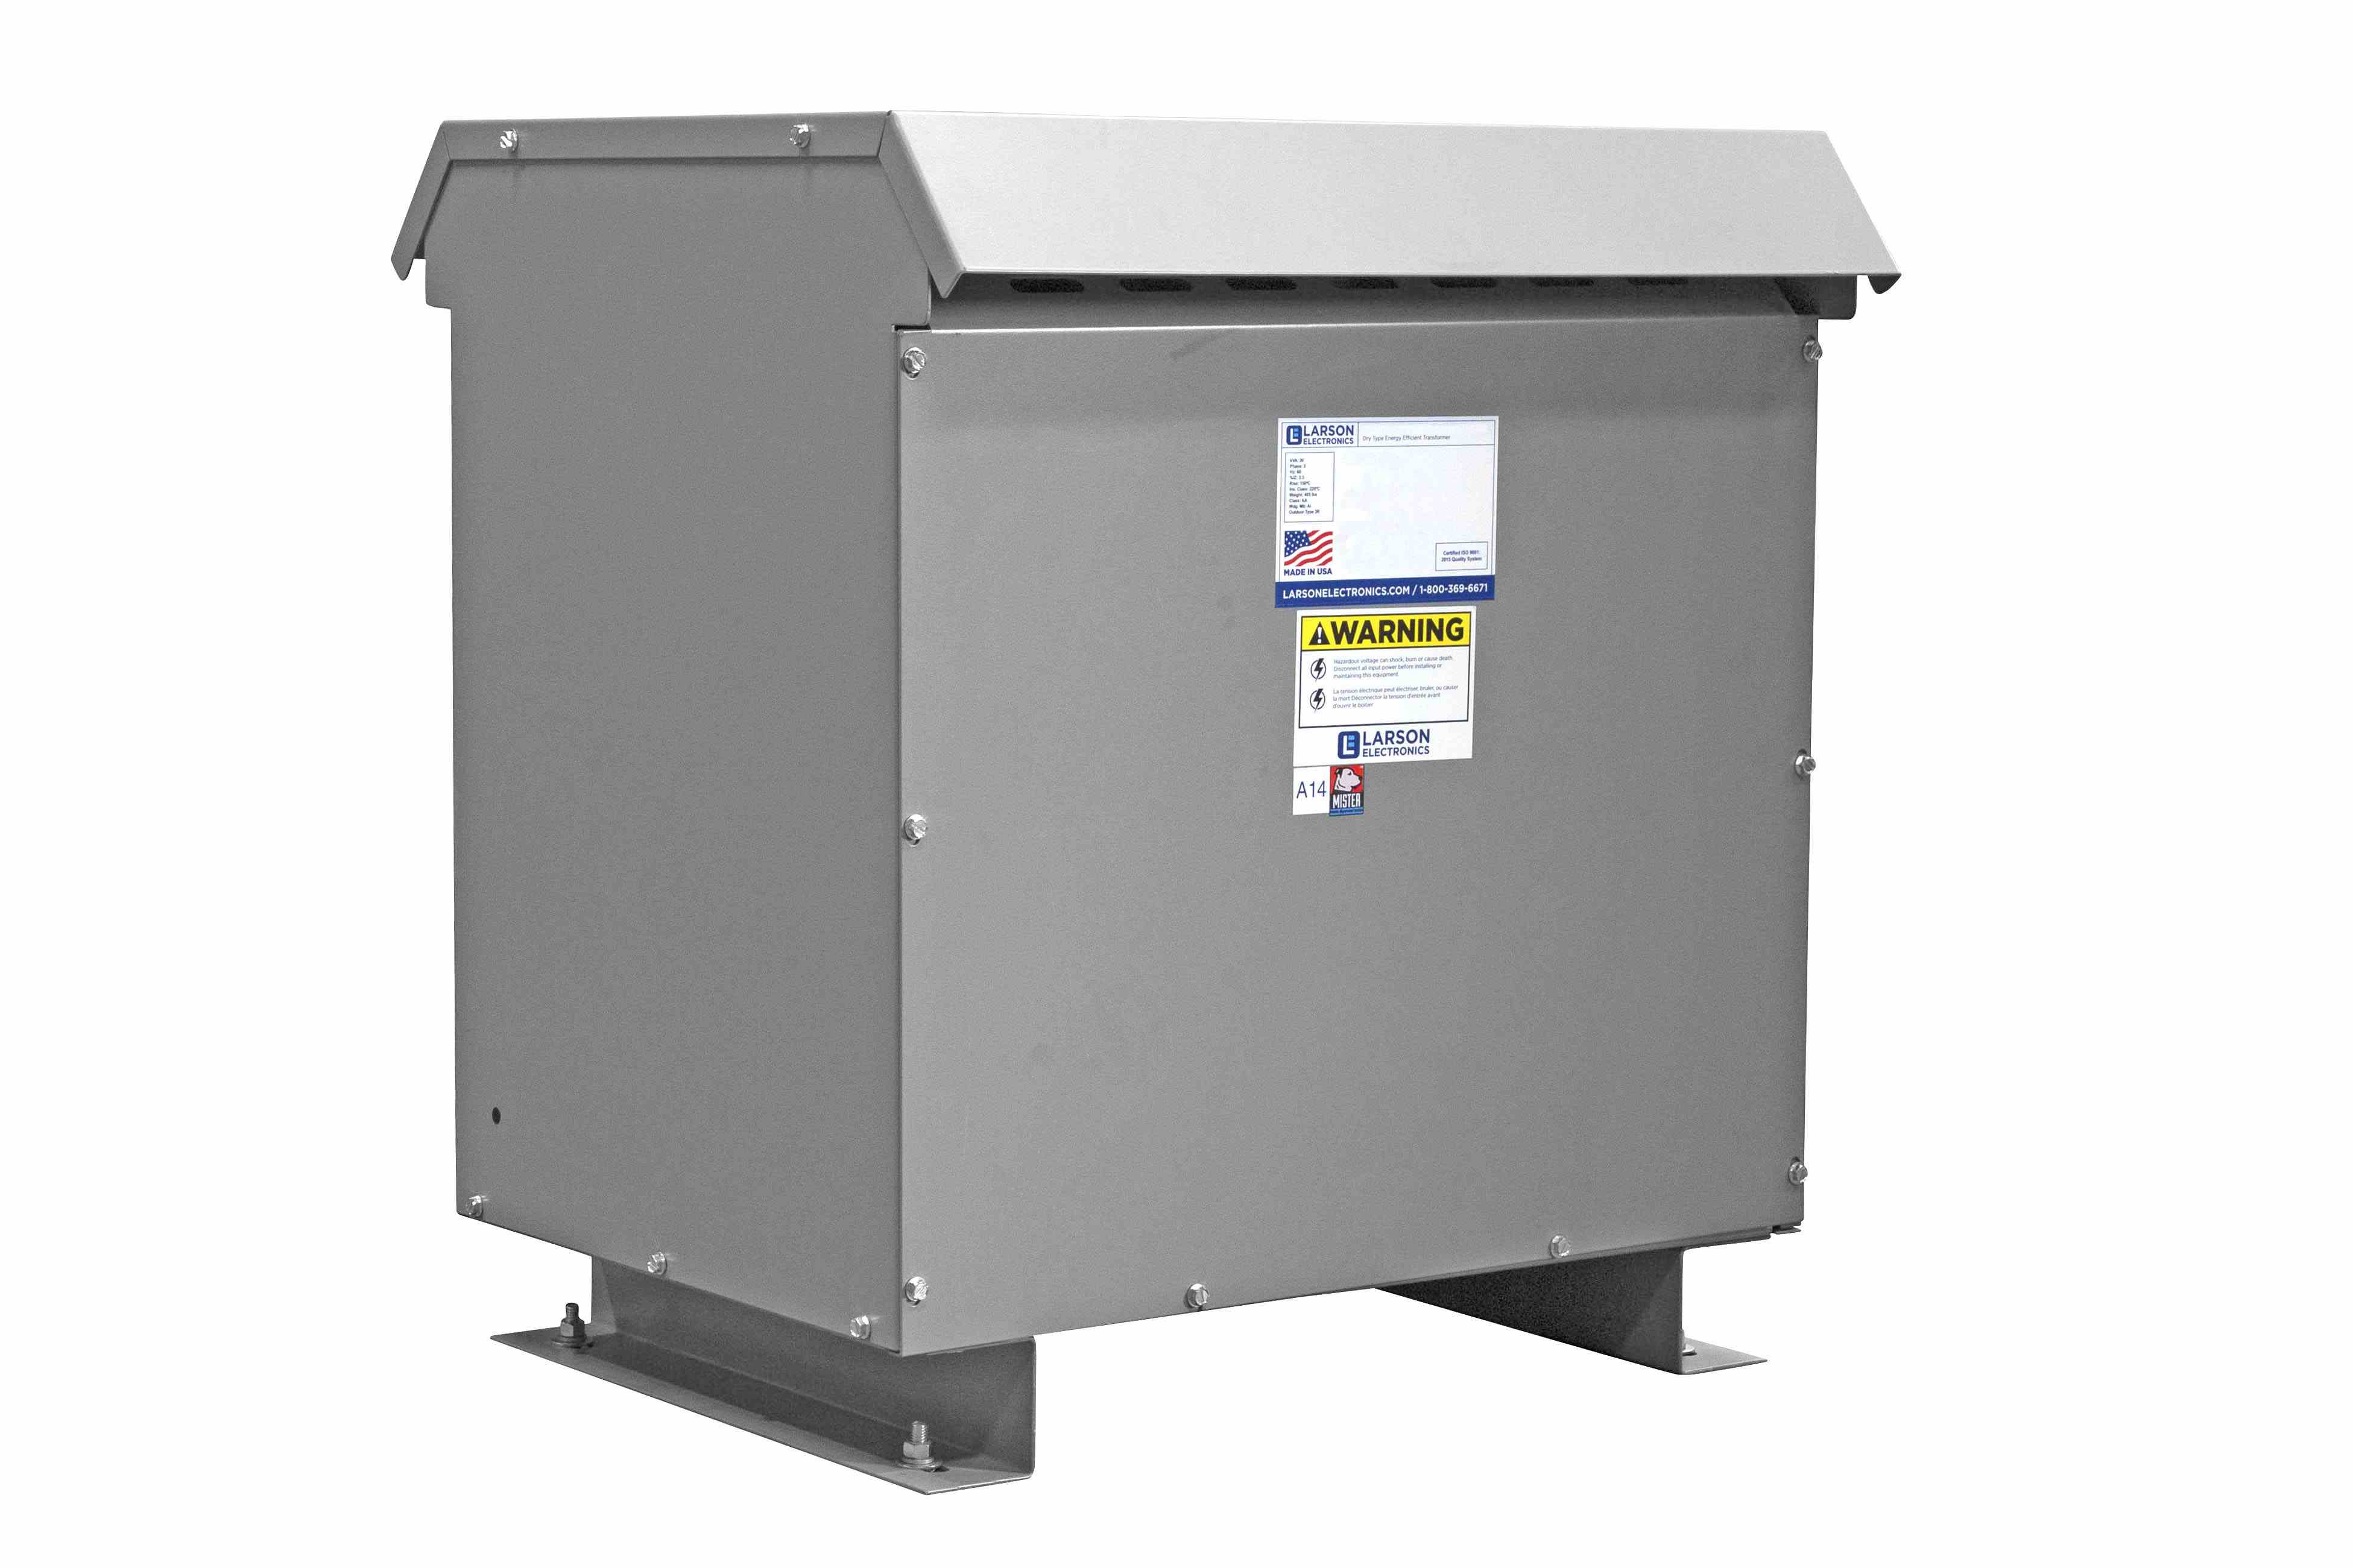 35 kVA 3PH Isolation Transformer, 480V Delta Primary, 240 Delta Secondary, N3R, Ventilated, 60 Hz